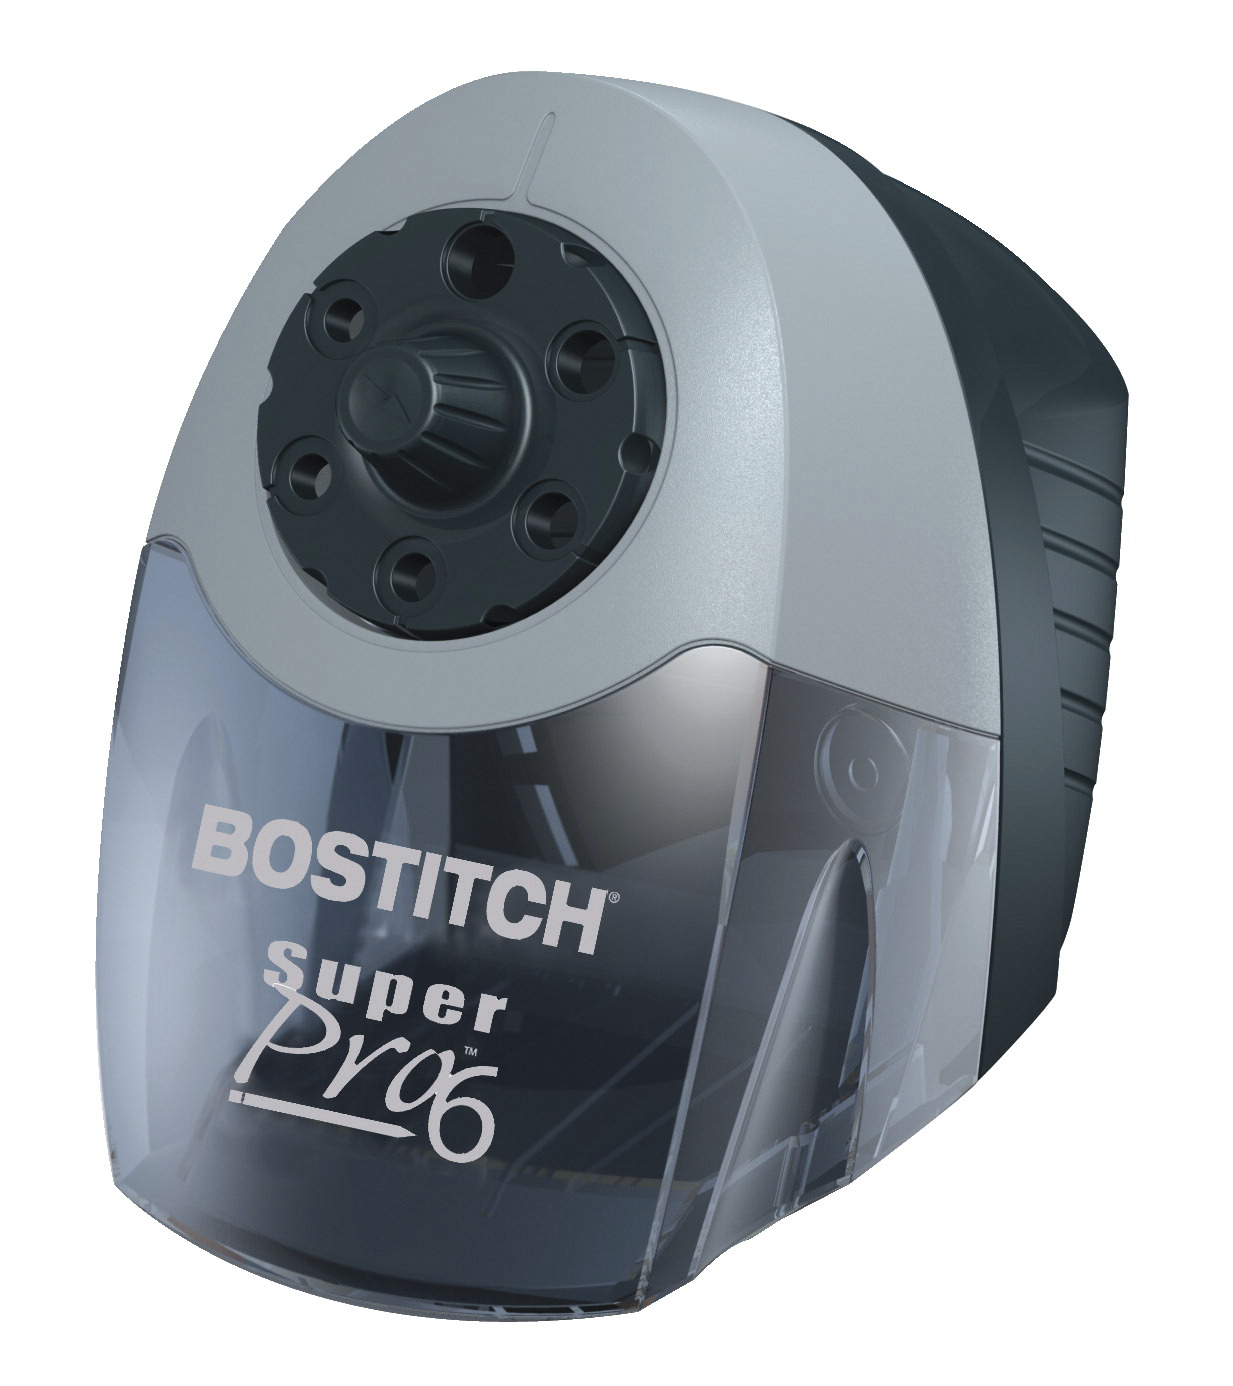 Bostitch SuperPro 6 Commercial Electric Steel Pencil Sharpener, 10-5/8 x 6-1/8 x 9 Inches, Gray